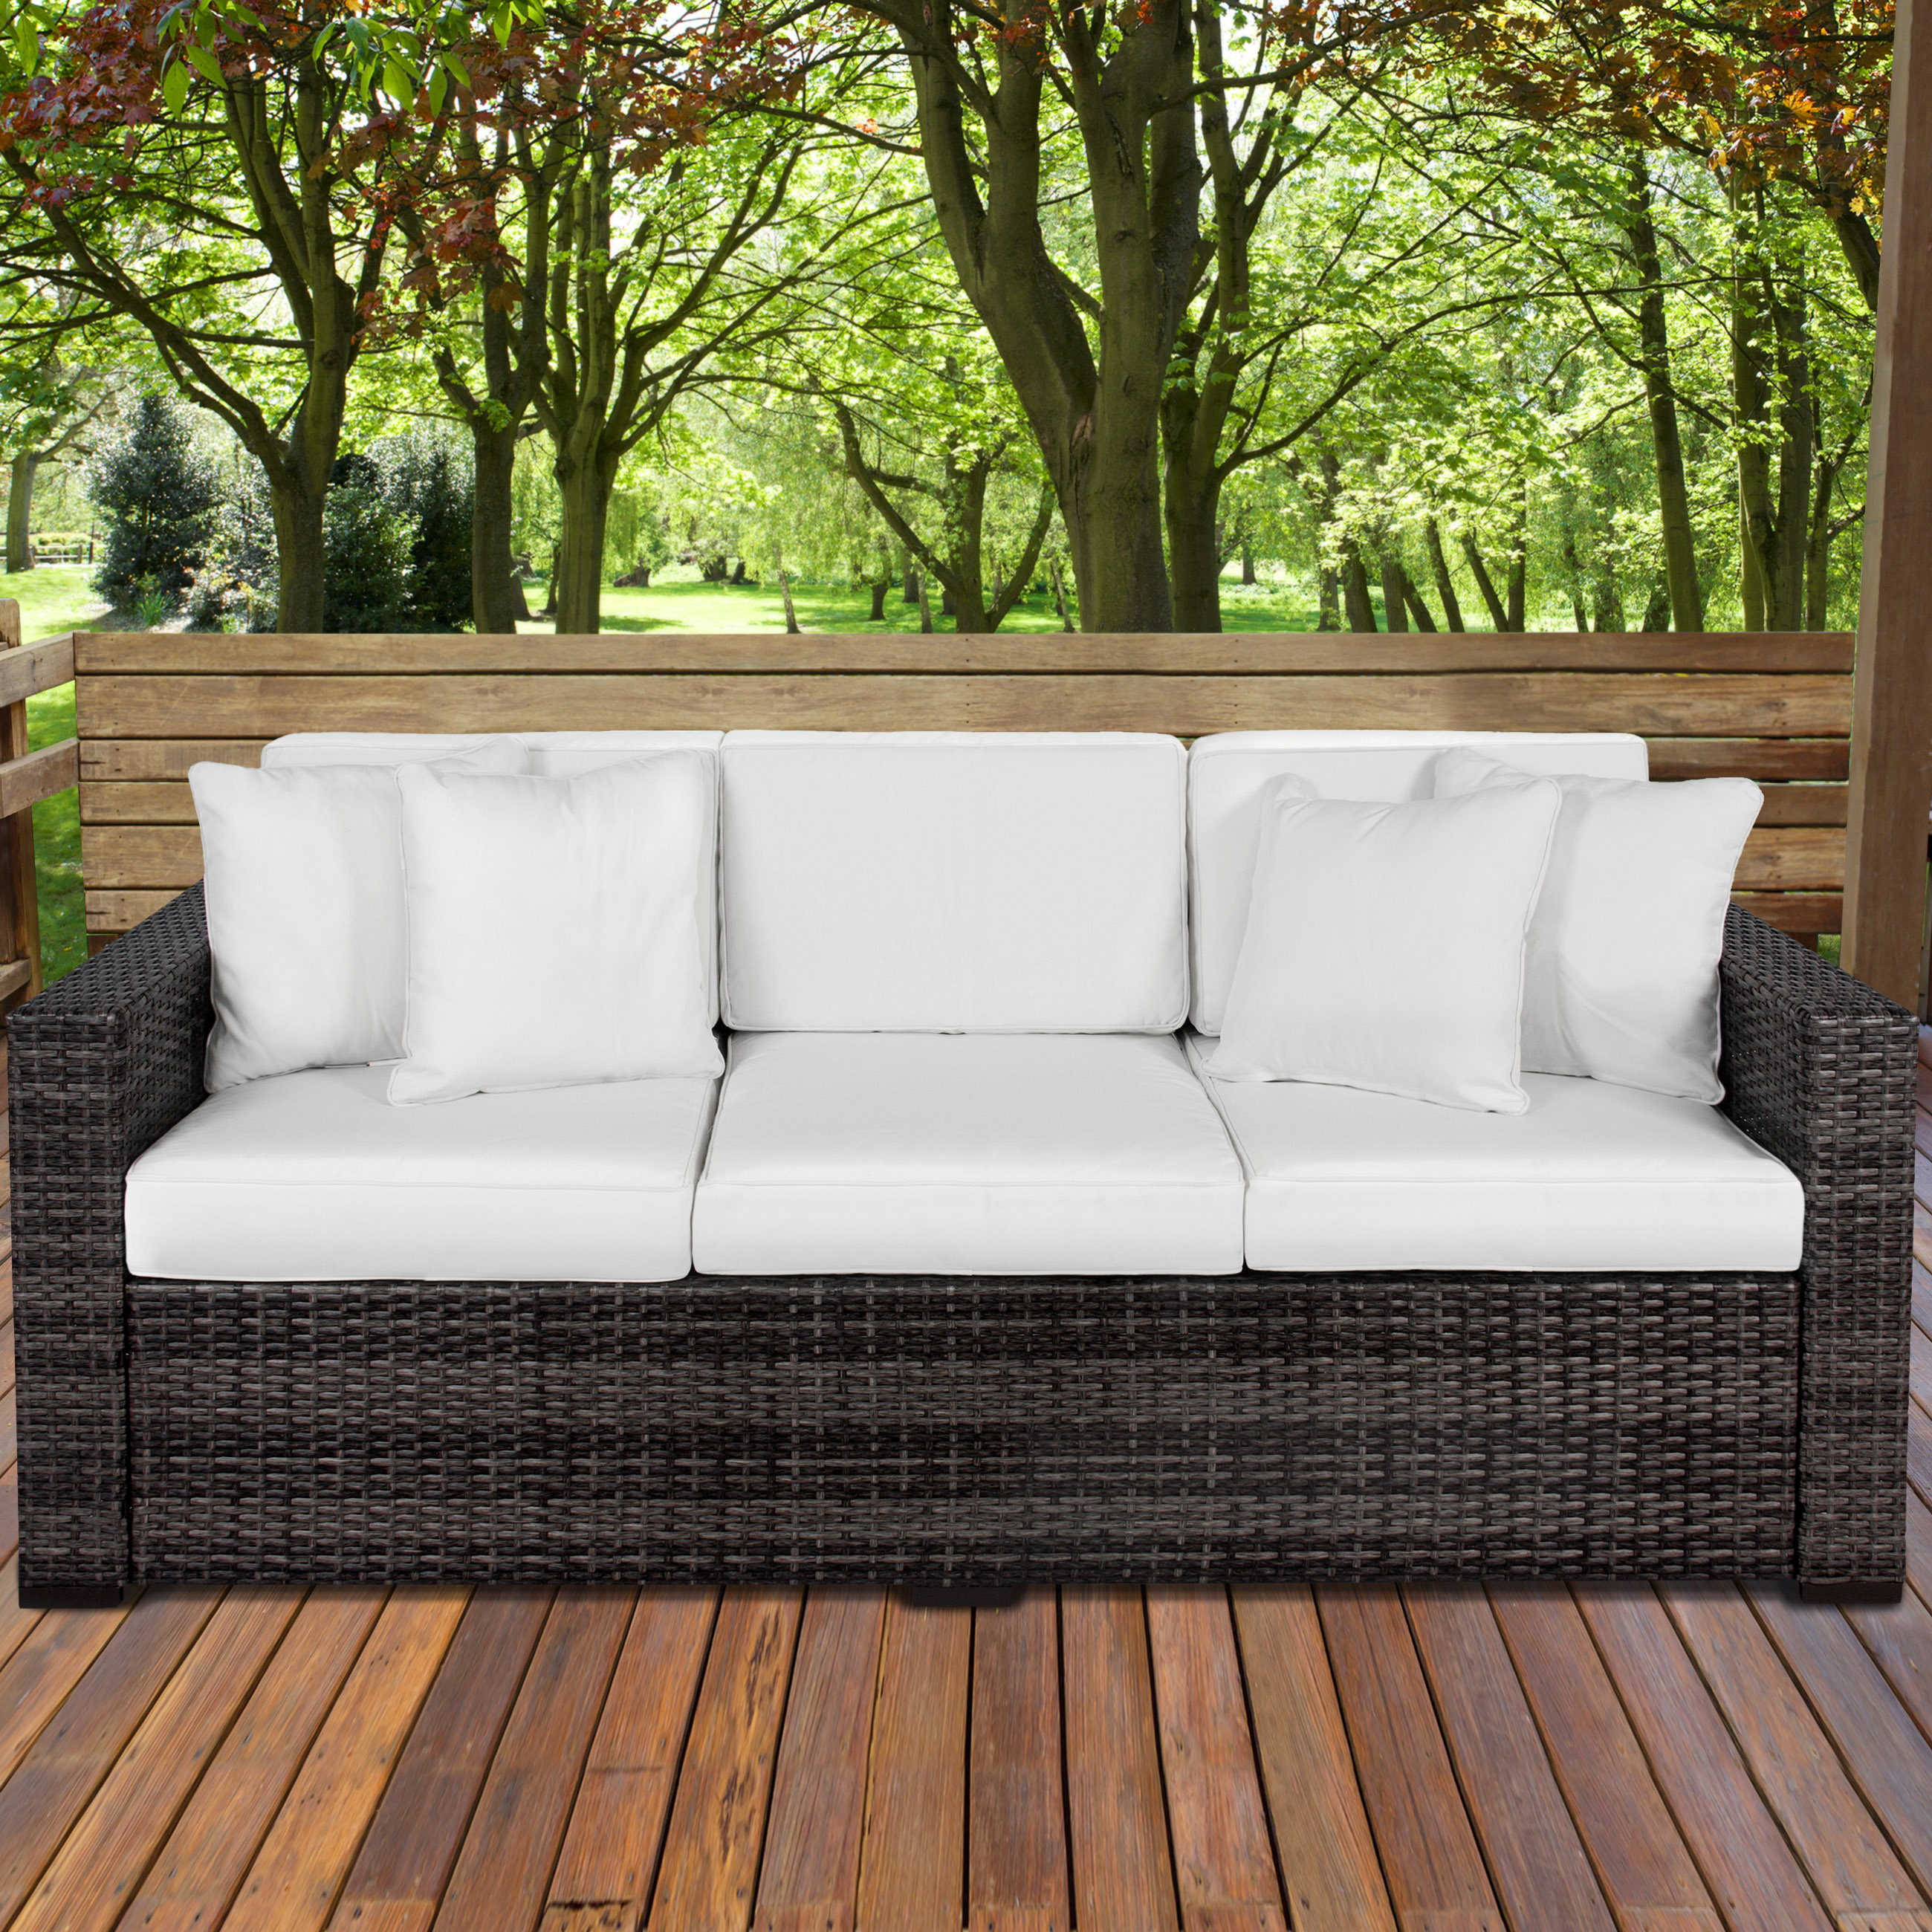 outdoor wicker patio furniture sofa 3 seater luxury comfort grey wicker couch